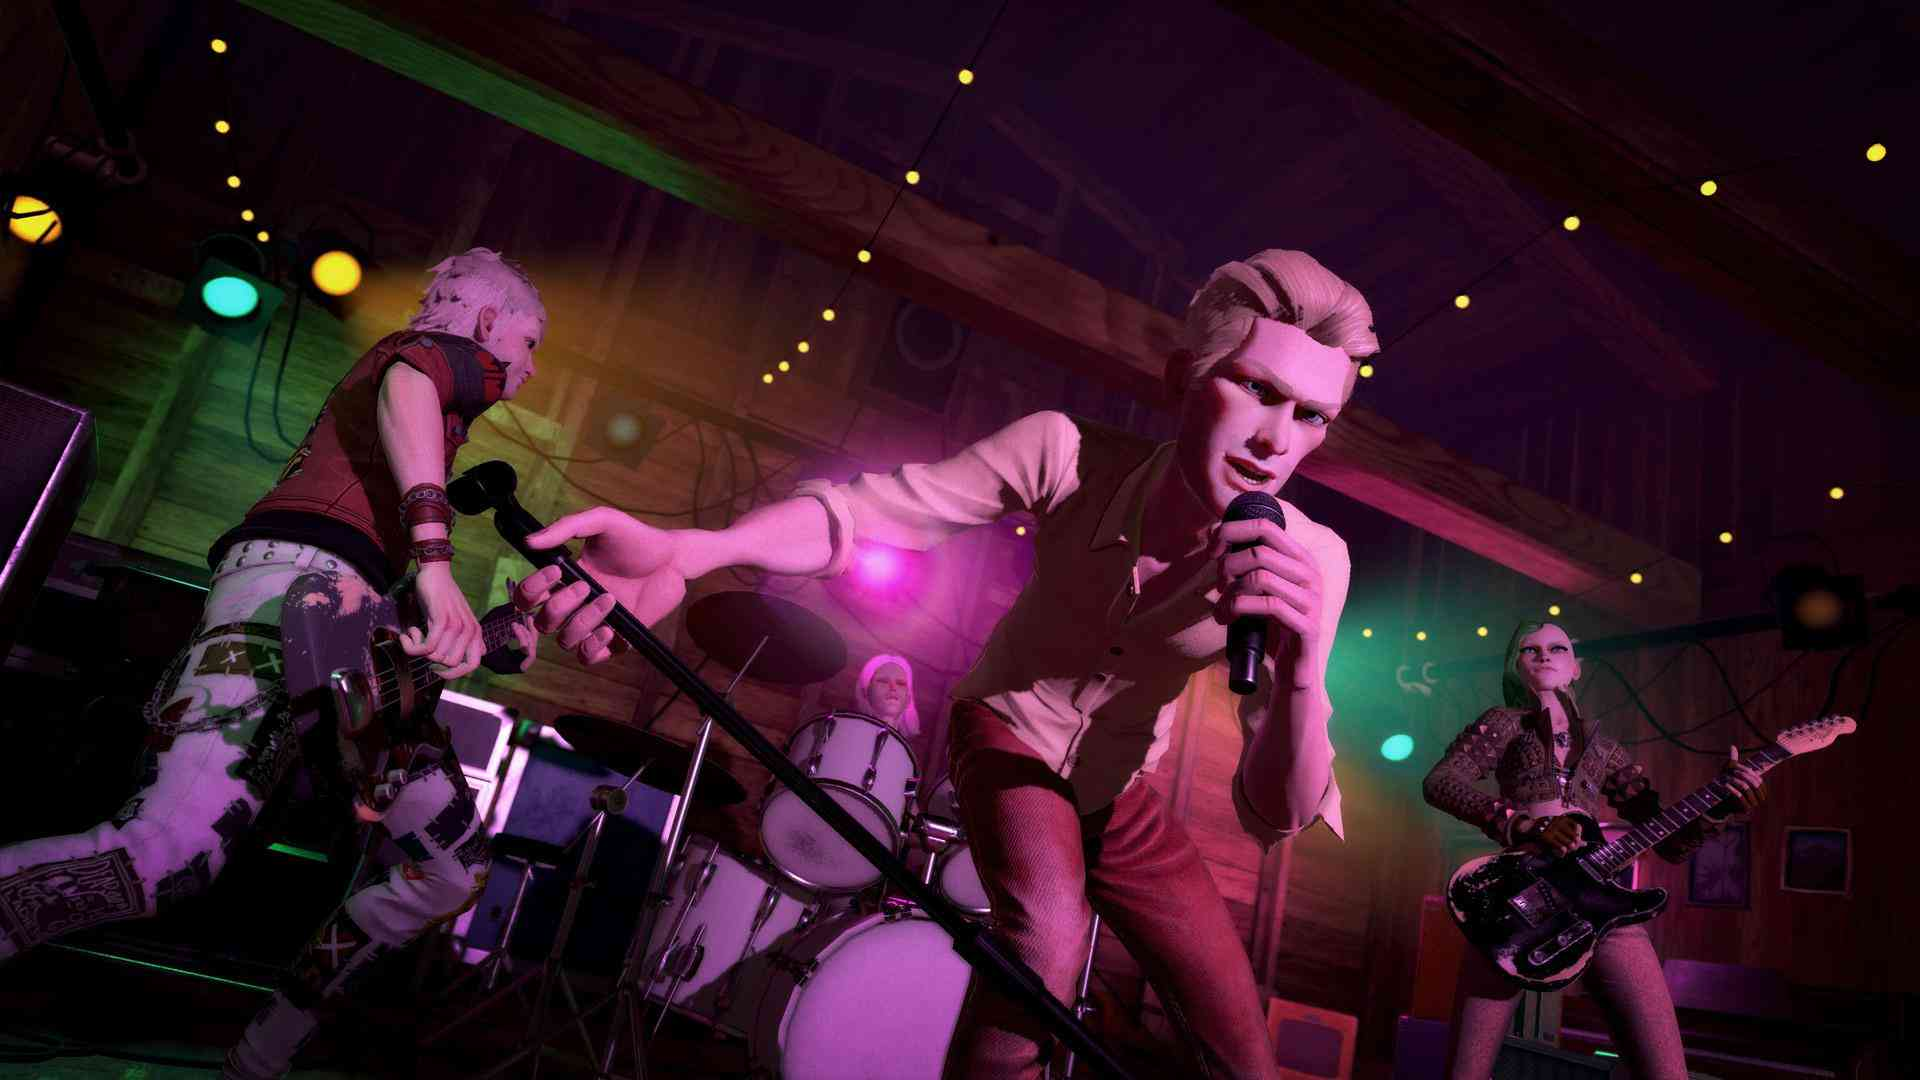 Rock Band 4 Vs Guitar Hero Live Which One Should You Buy